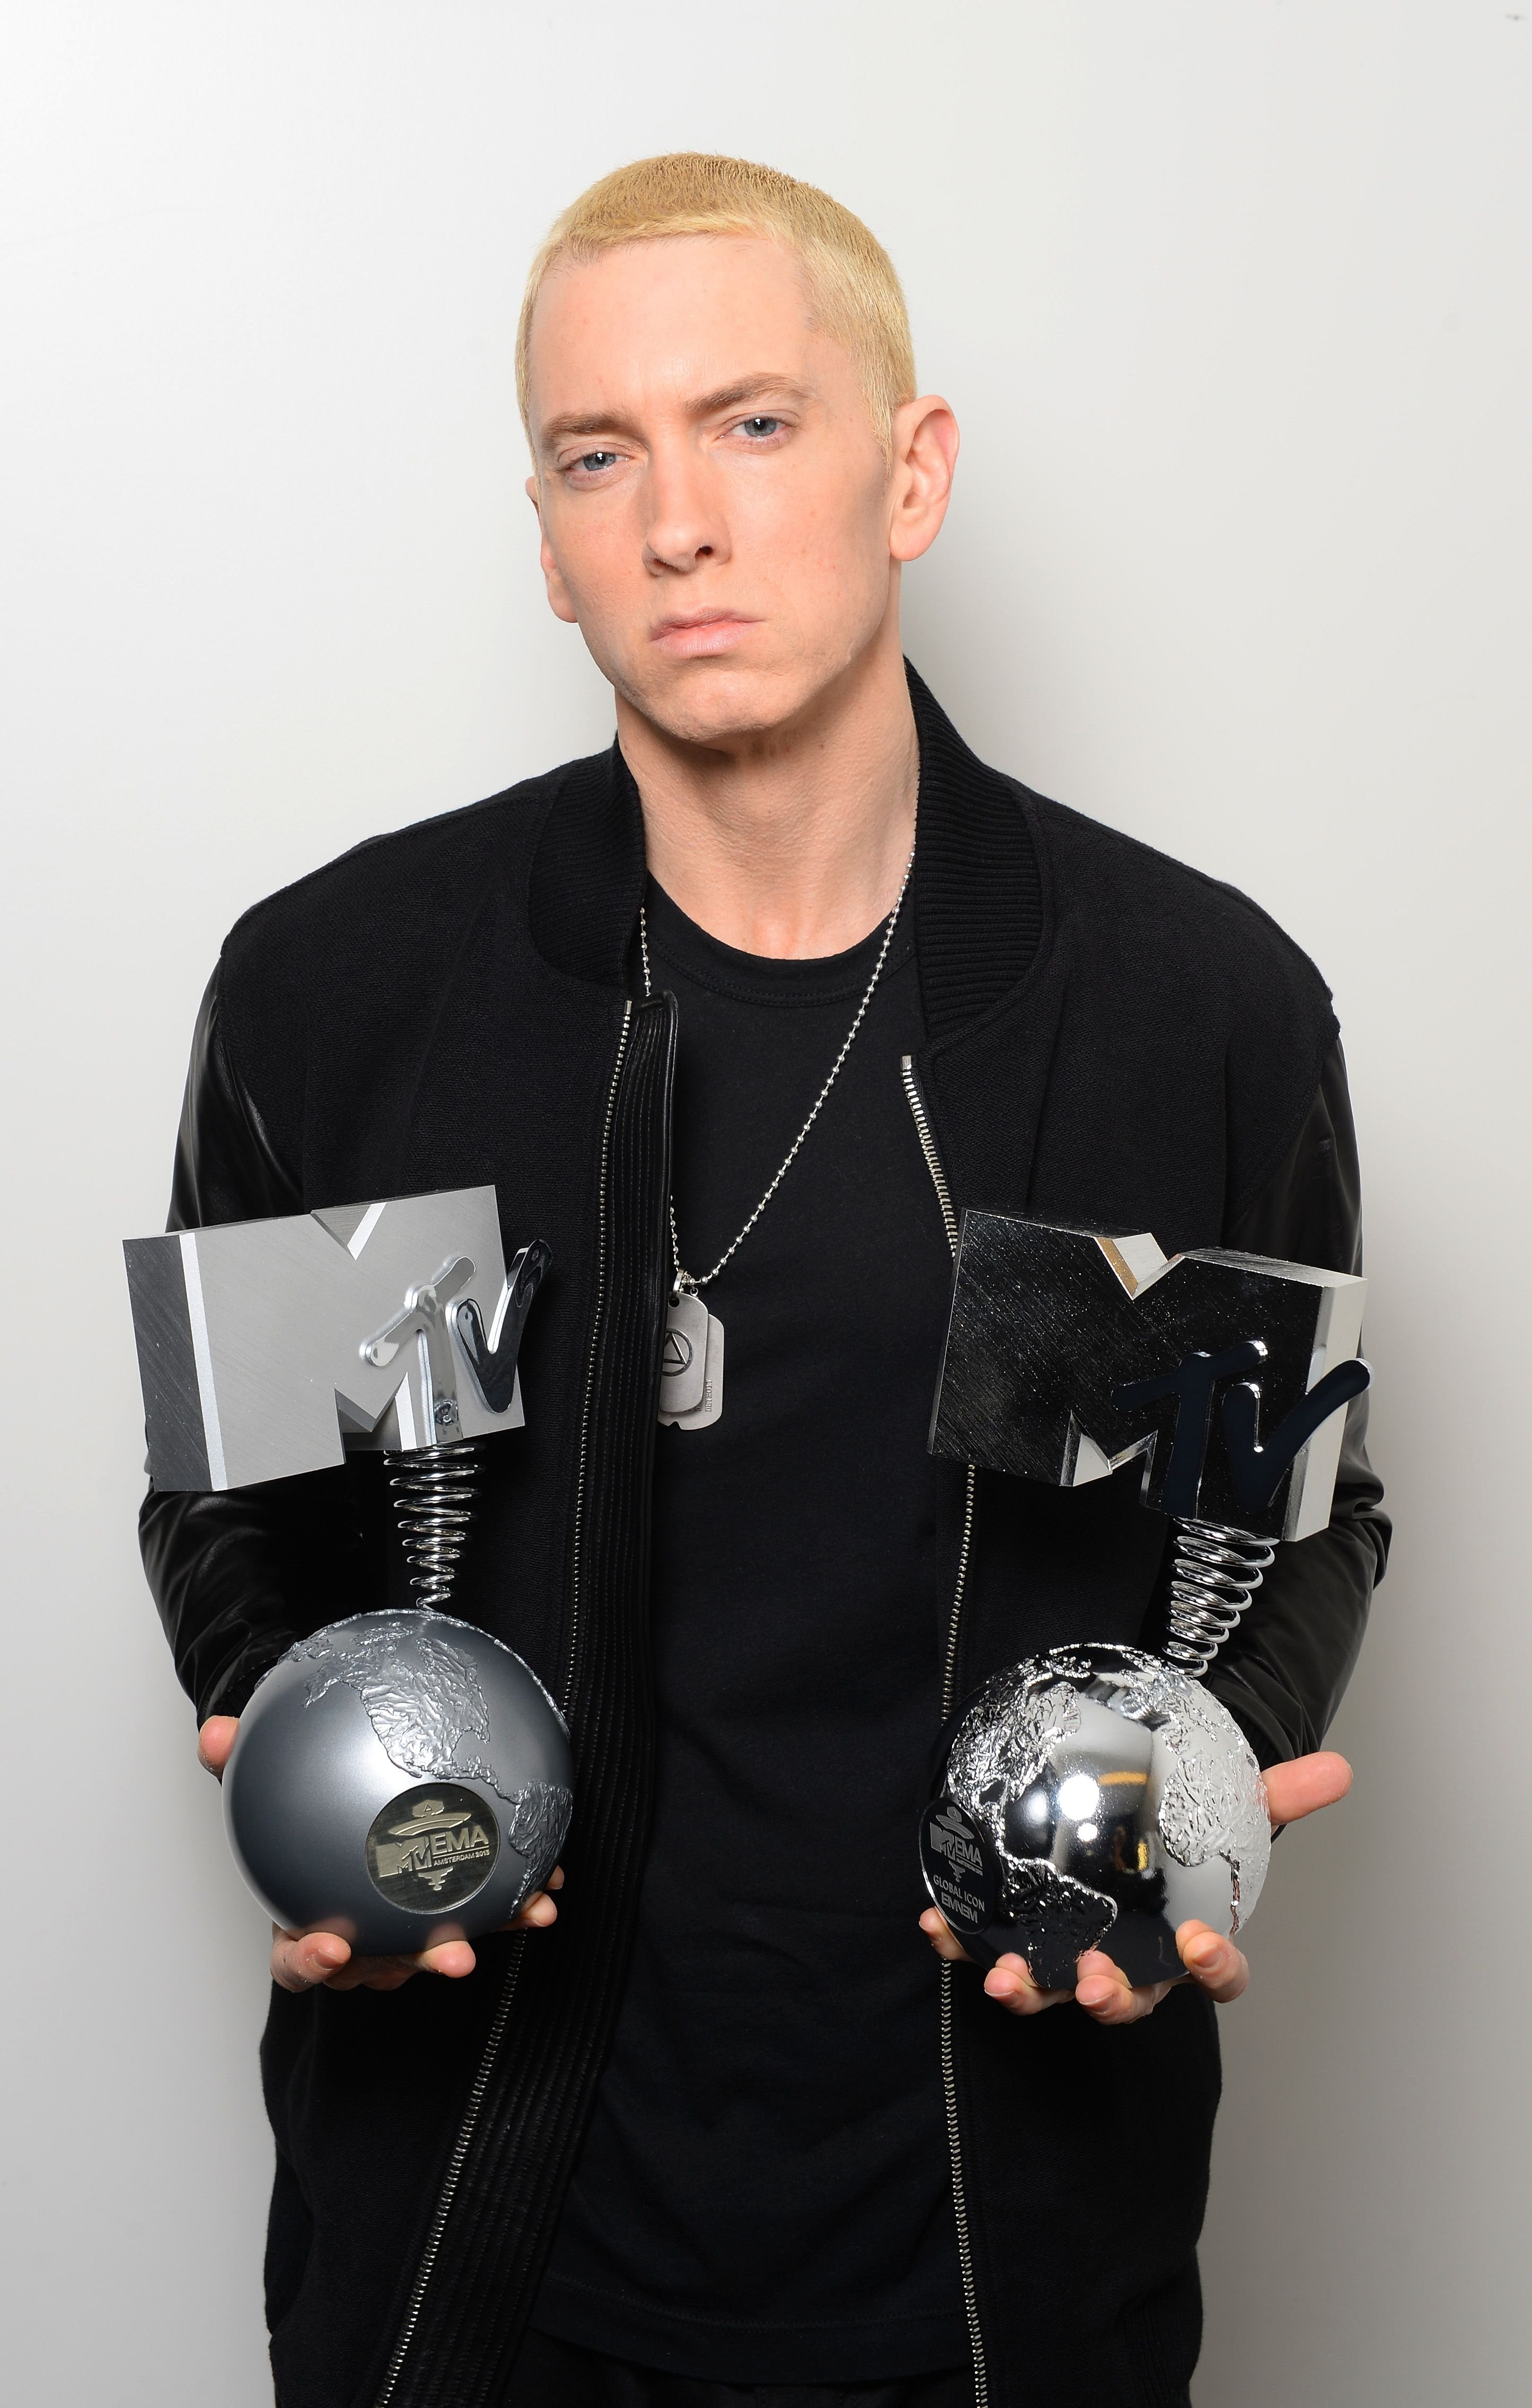 Eminem poses in his dressing room with the 'Best Hip Hop' and 'Global Icon' awards during the MTV EMA's 2013 at the Ziggo Dome on November 10, 2013 | Photo: Getty Images